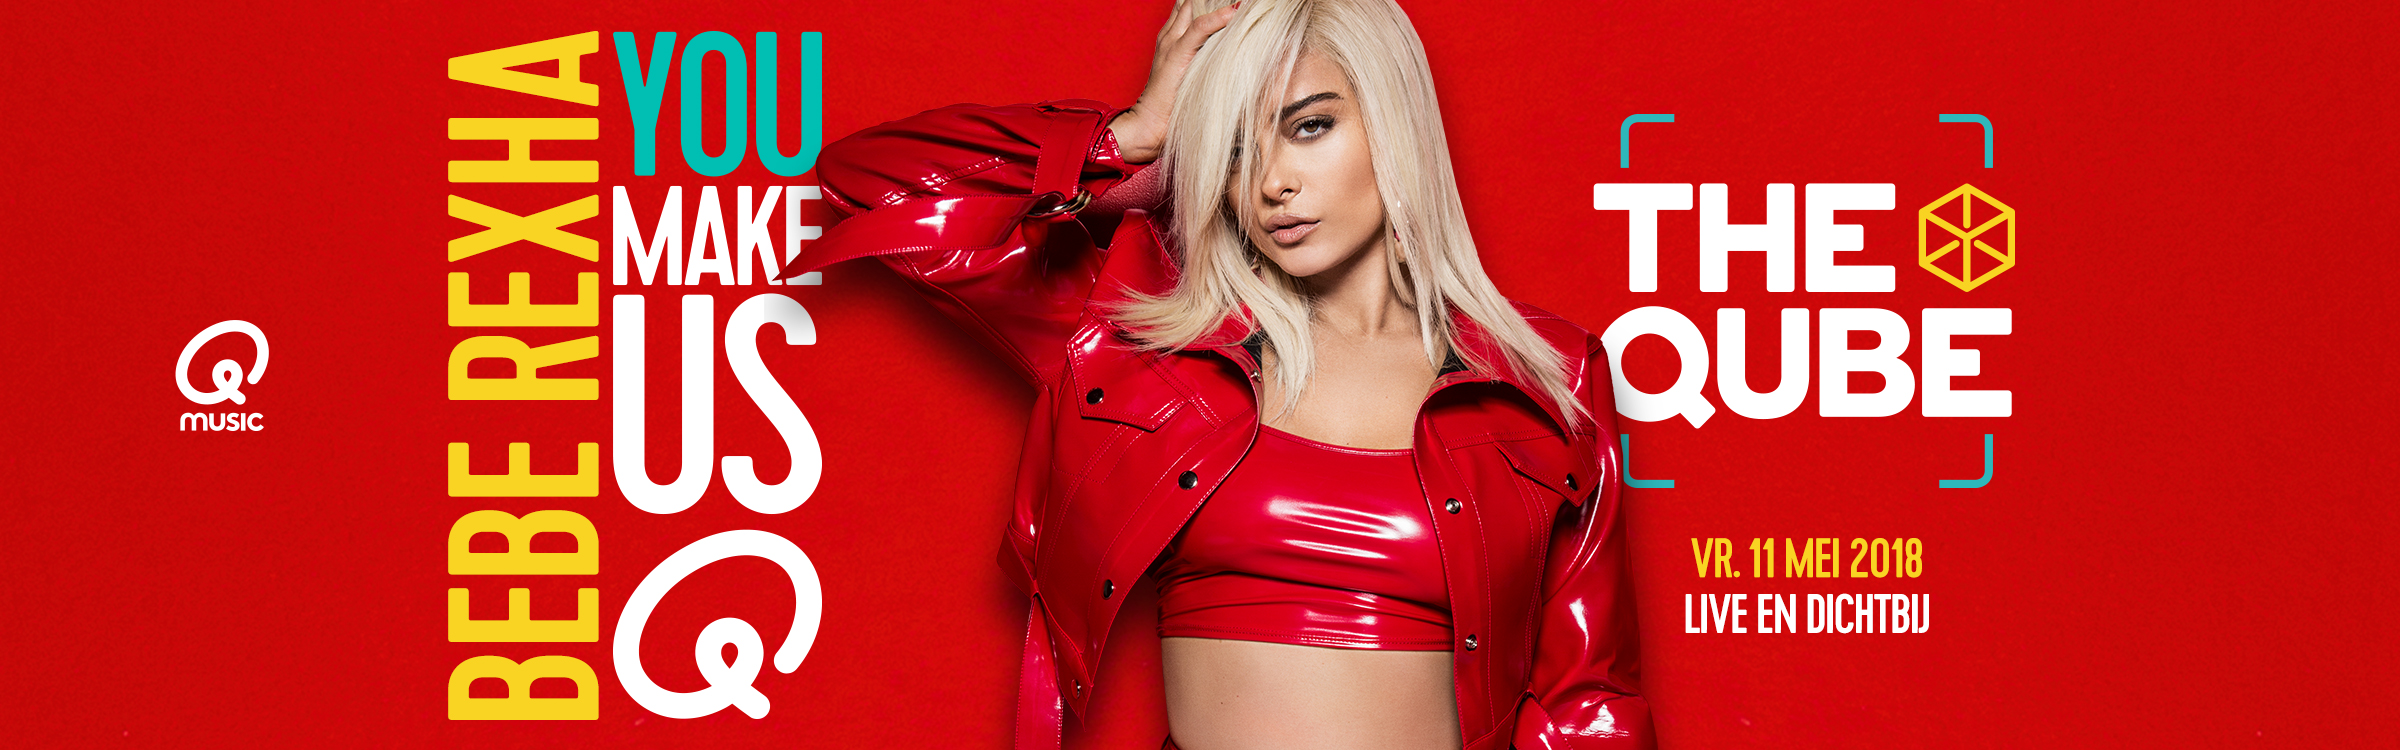 Qmusic actionheader beberexha